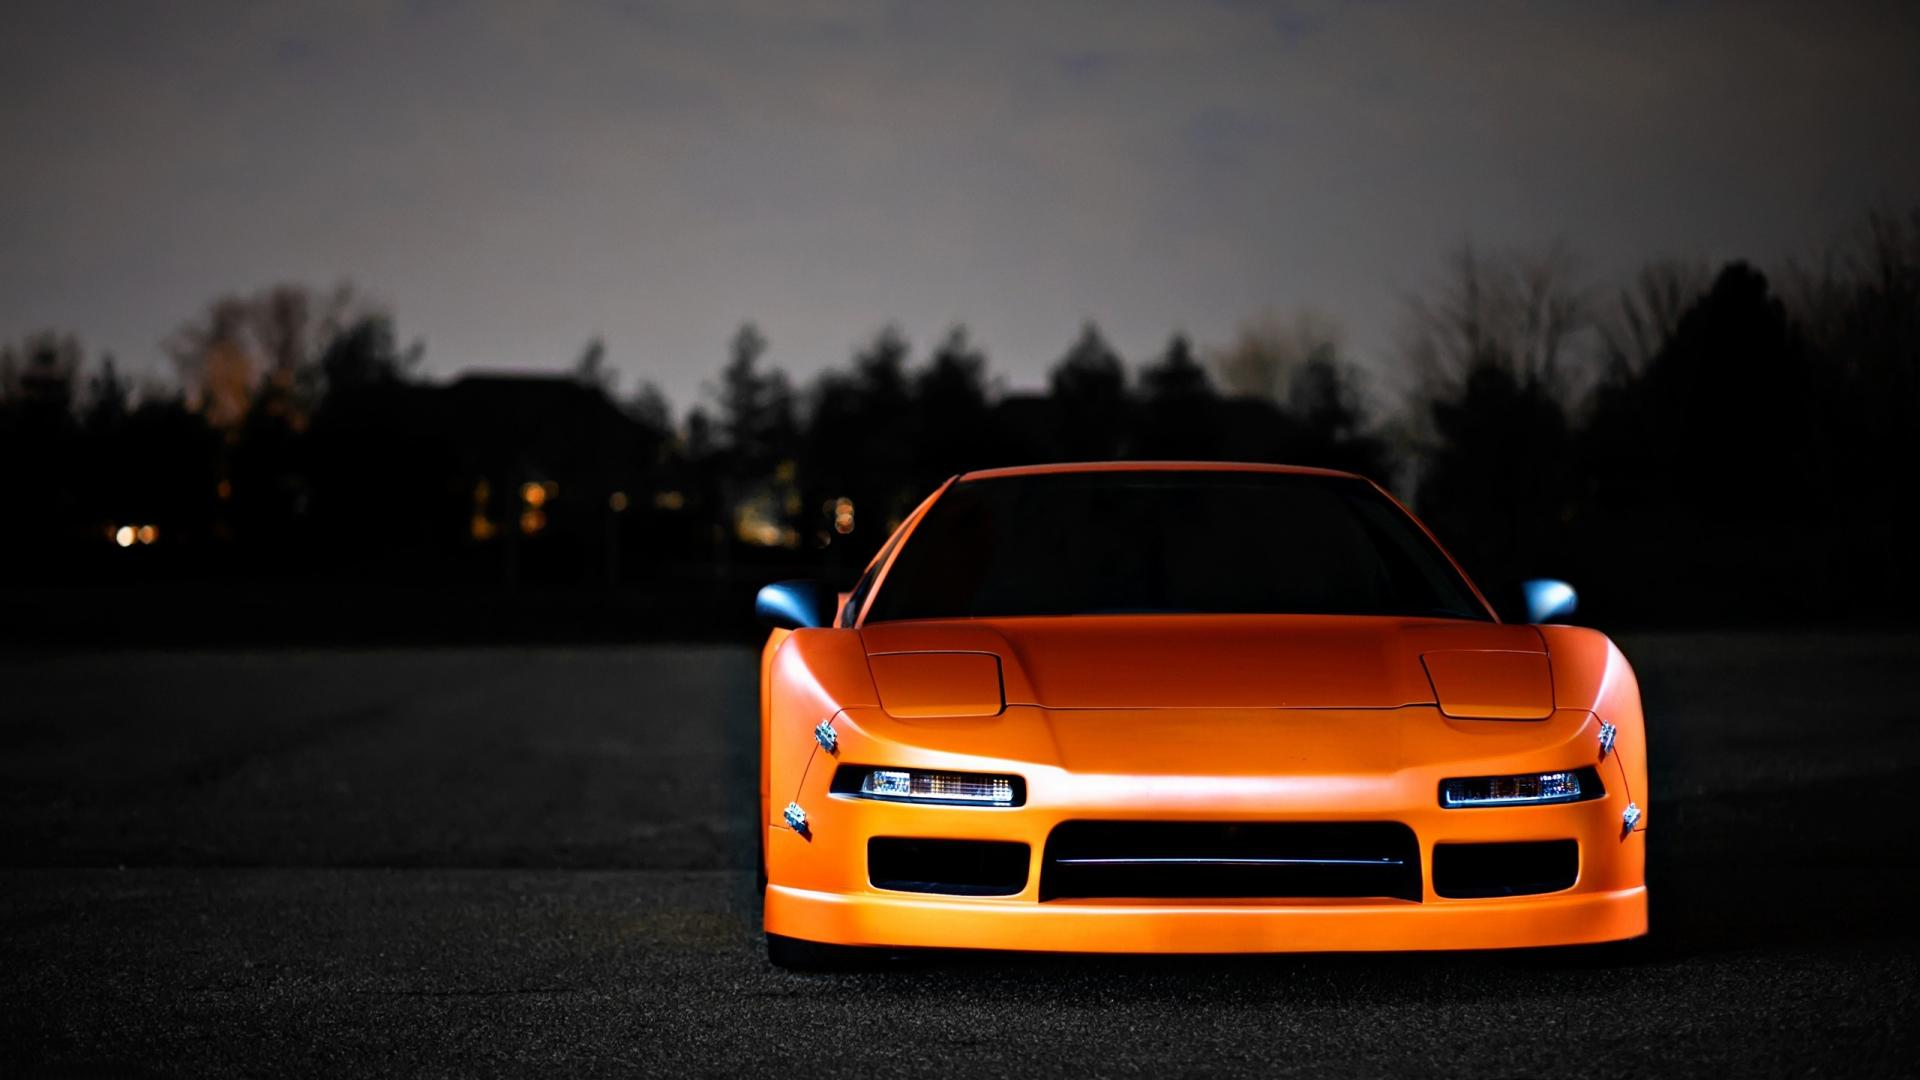 JDM Wallpapers (60 Wallpapers) – Adorable Wallpapers